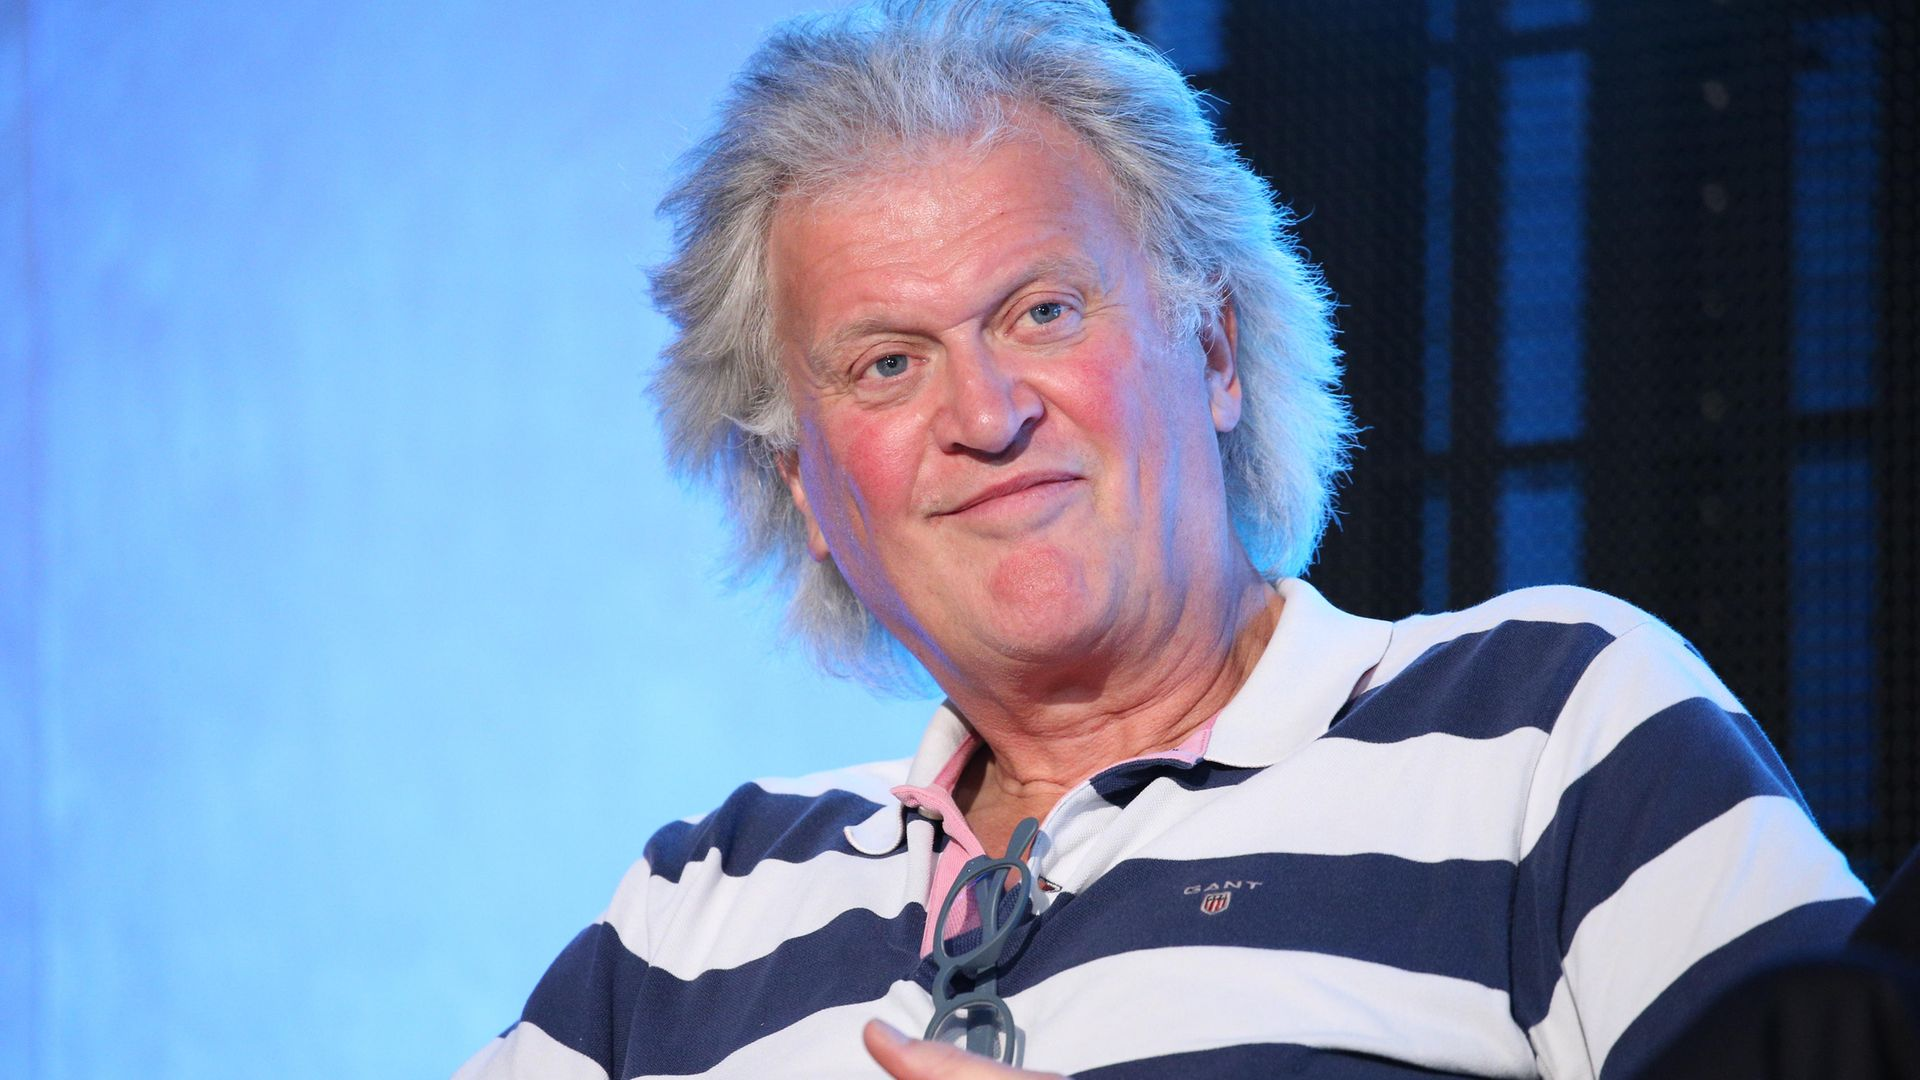 Brexiteer and Wetherspoons boss Tim Martin during a Brexit Party event at the QEII Centre in London. - Credit: PA